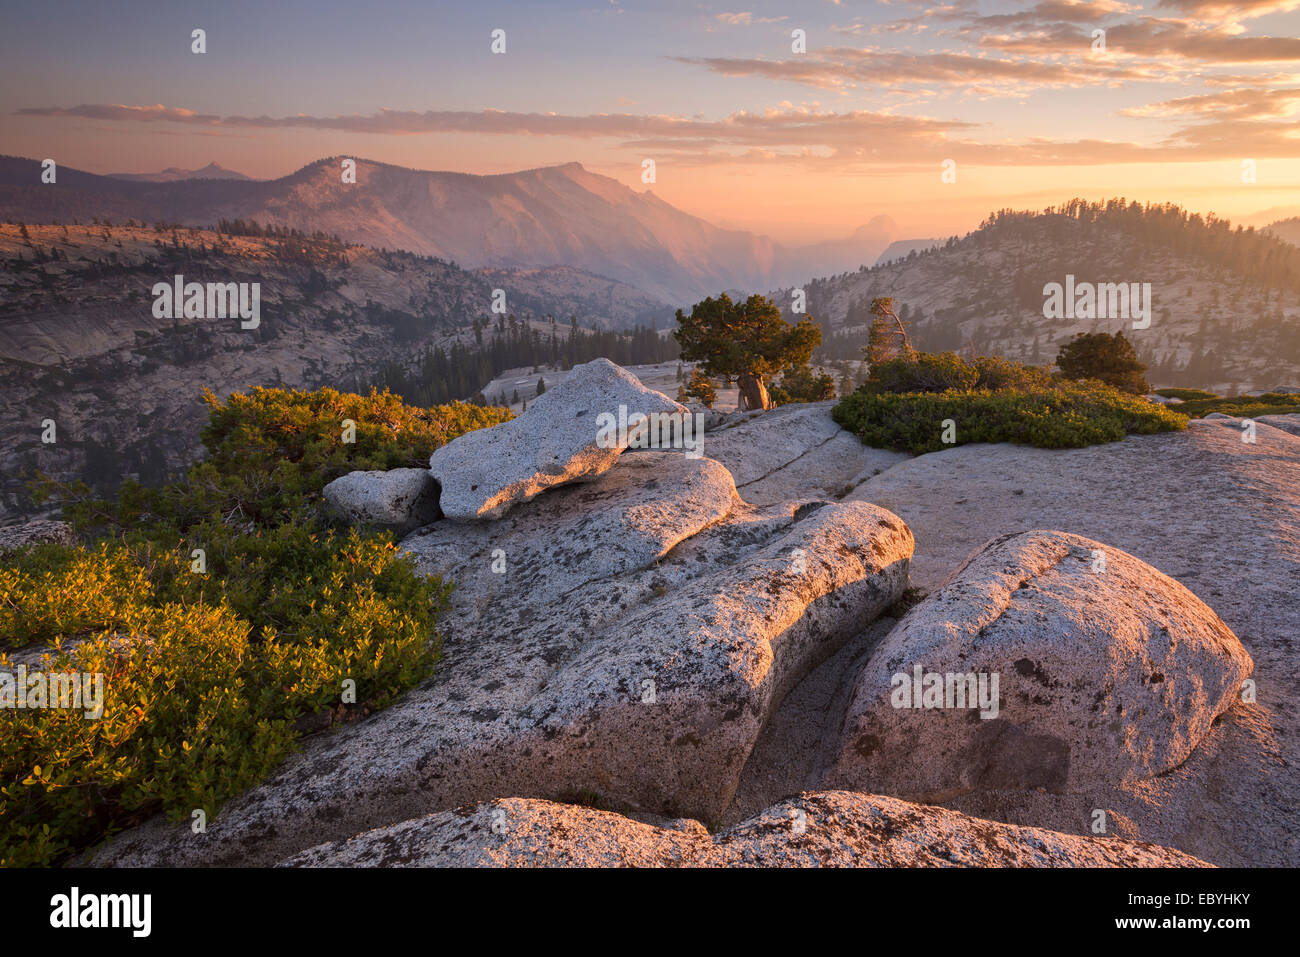 View towards Half Dome at sunset, from Olmsted Point, Yosemite National Park, California, USA. Autumn (October) - Stock Image